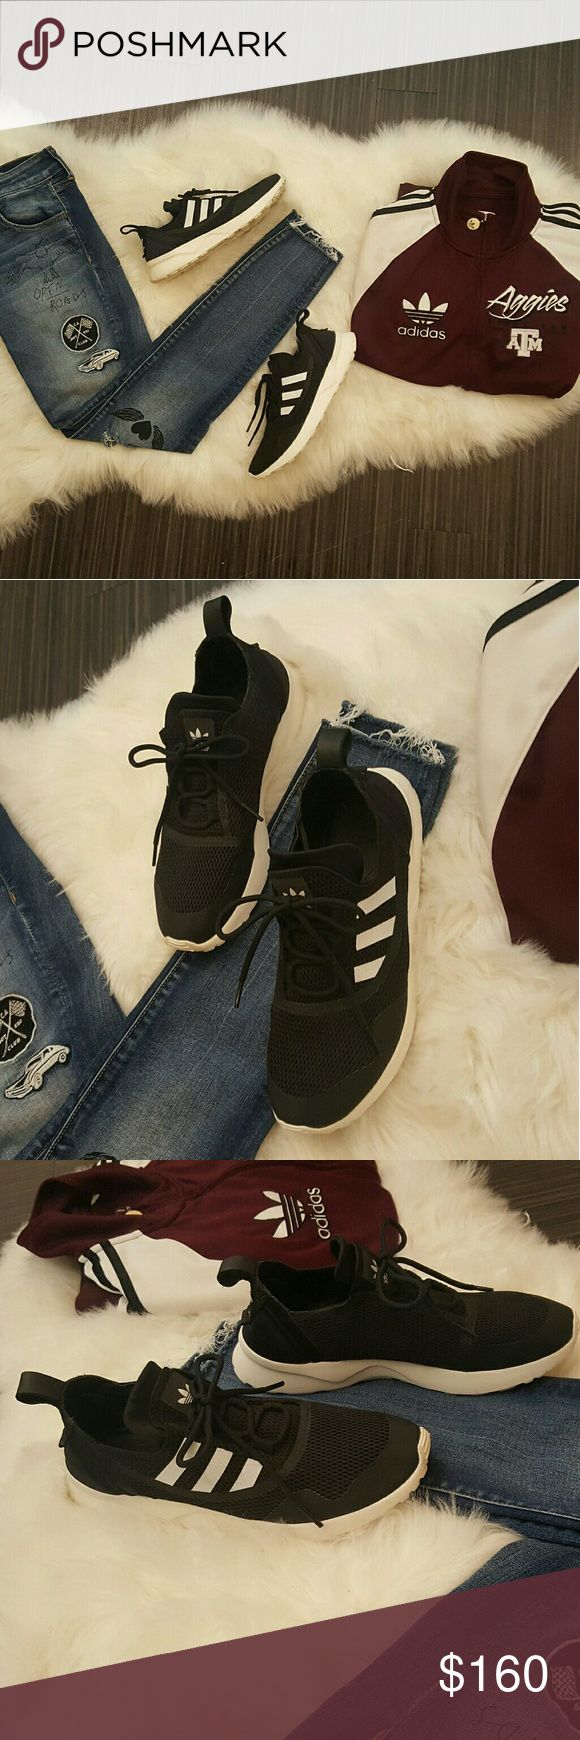 ❤ MAKE OFFER❤Adidas ZX FLUX Adv Virtue Sneakers! Women's size 7.5   Brand new condition! Only worn once!  Classic adidas three stripes, very comfortable!   Super cute and a staple in any wardrobe! adidas Shoes Sneakers